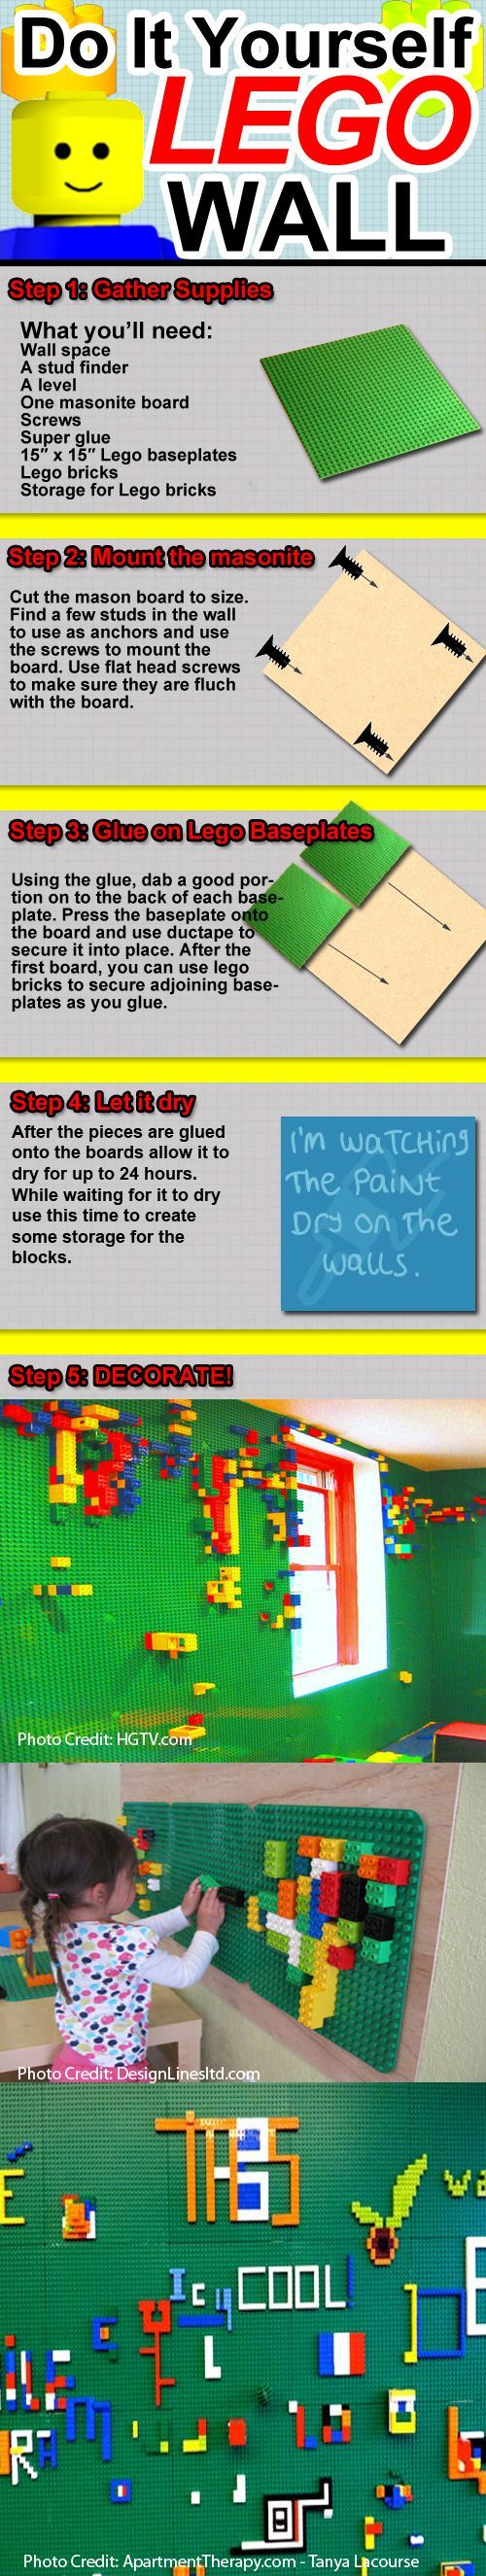 DIY LEGO WALL...summer time project :) plus it will keep the Legos off the floor away from the baby!